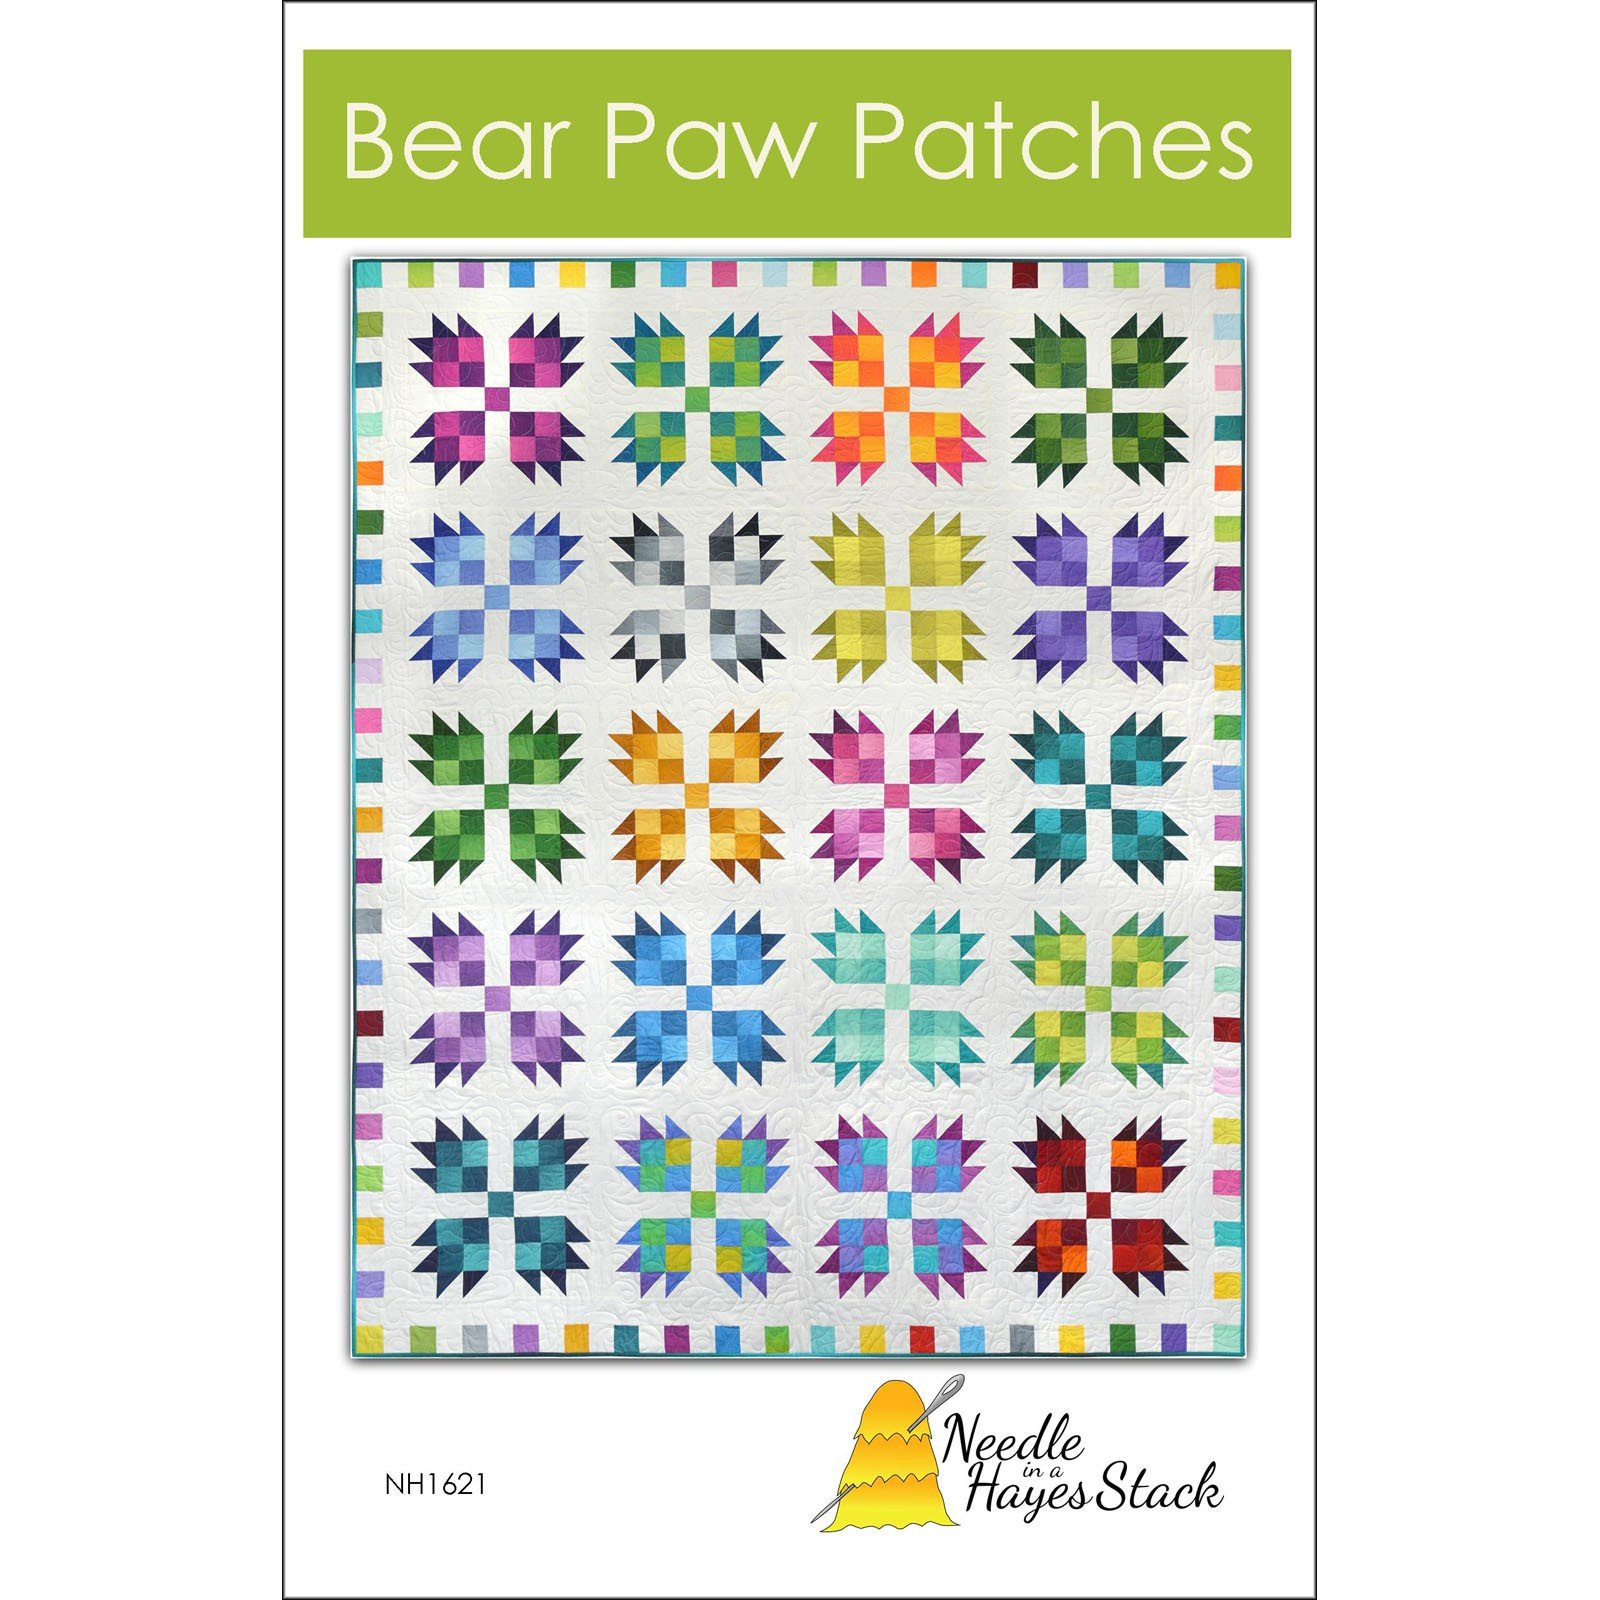 Pattern. Bear Paw Patches by Tiffany Hayes Needle in a Hayes Stack